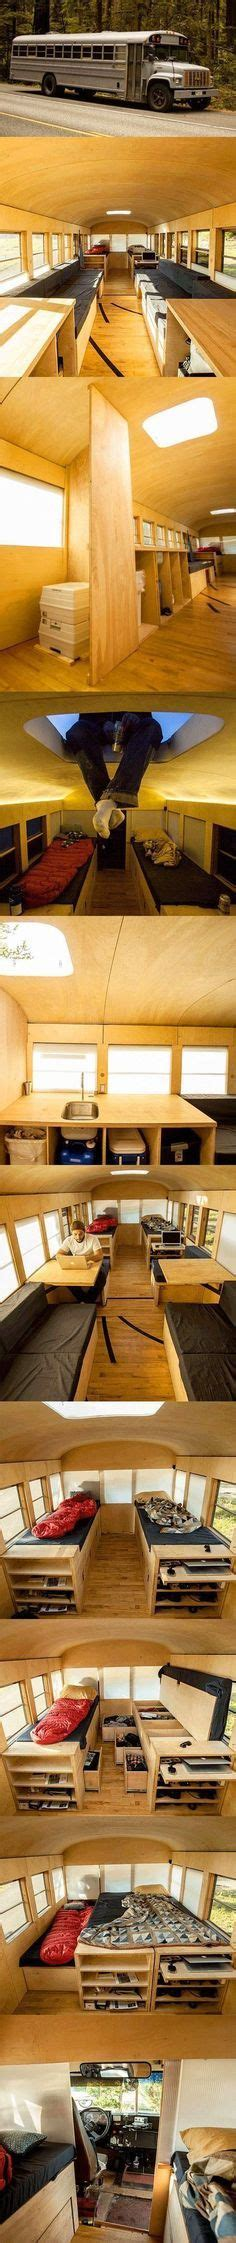 School Converted Into Small Home By Architecture Student by An Architecture Student Transformed A School Into A